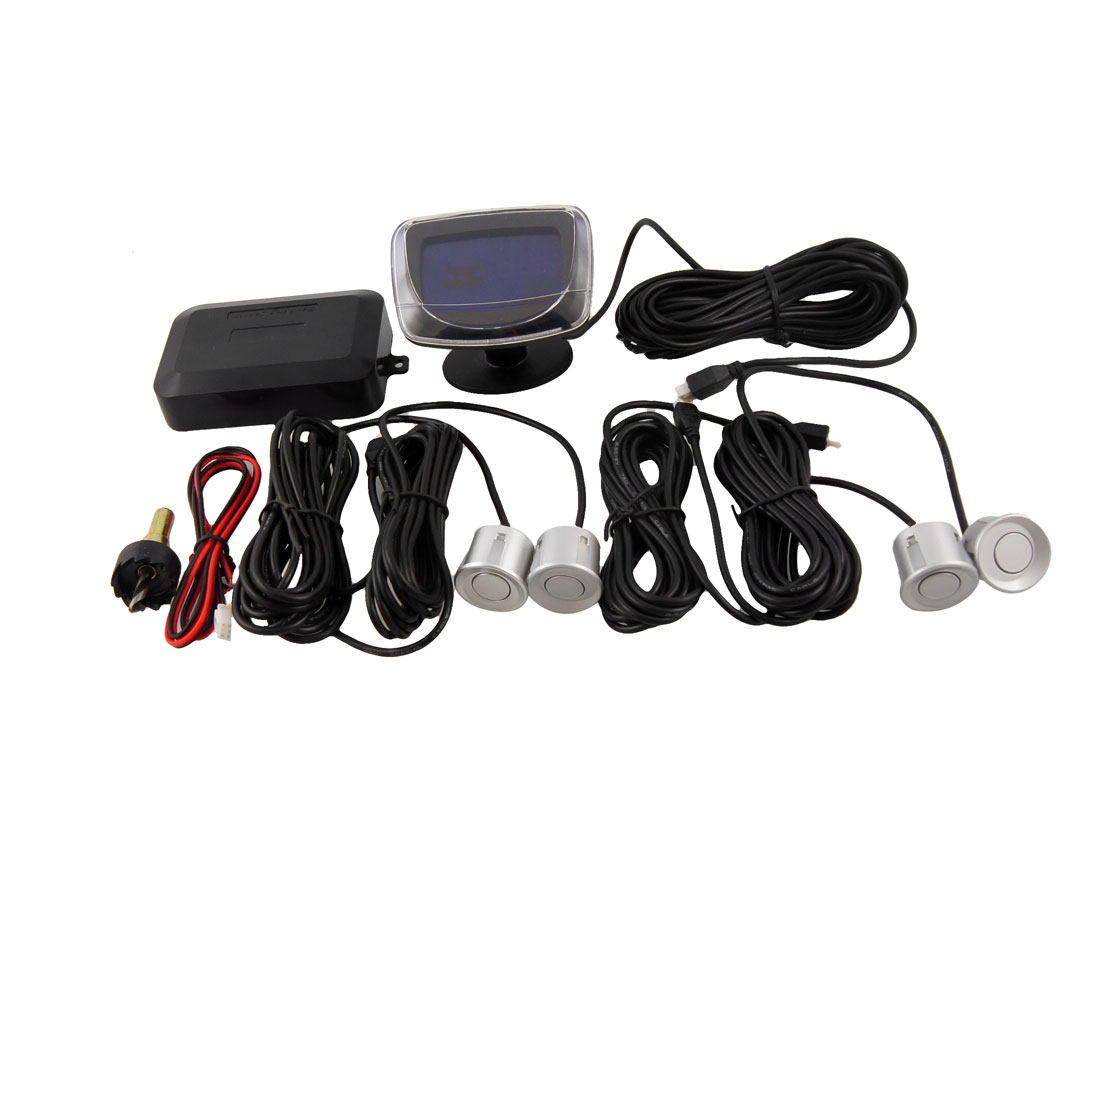 Parking 4 Sensors LED Display Car Reverse Backup System